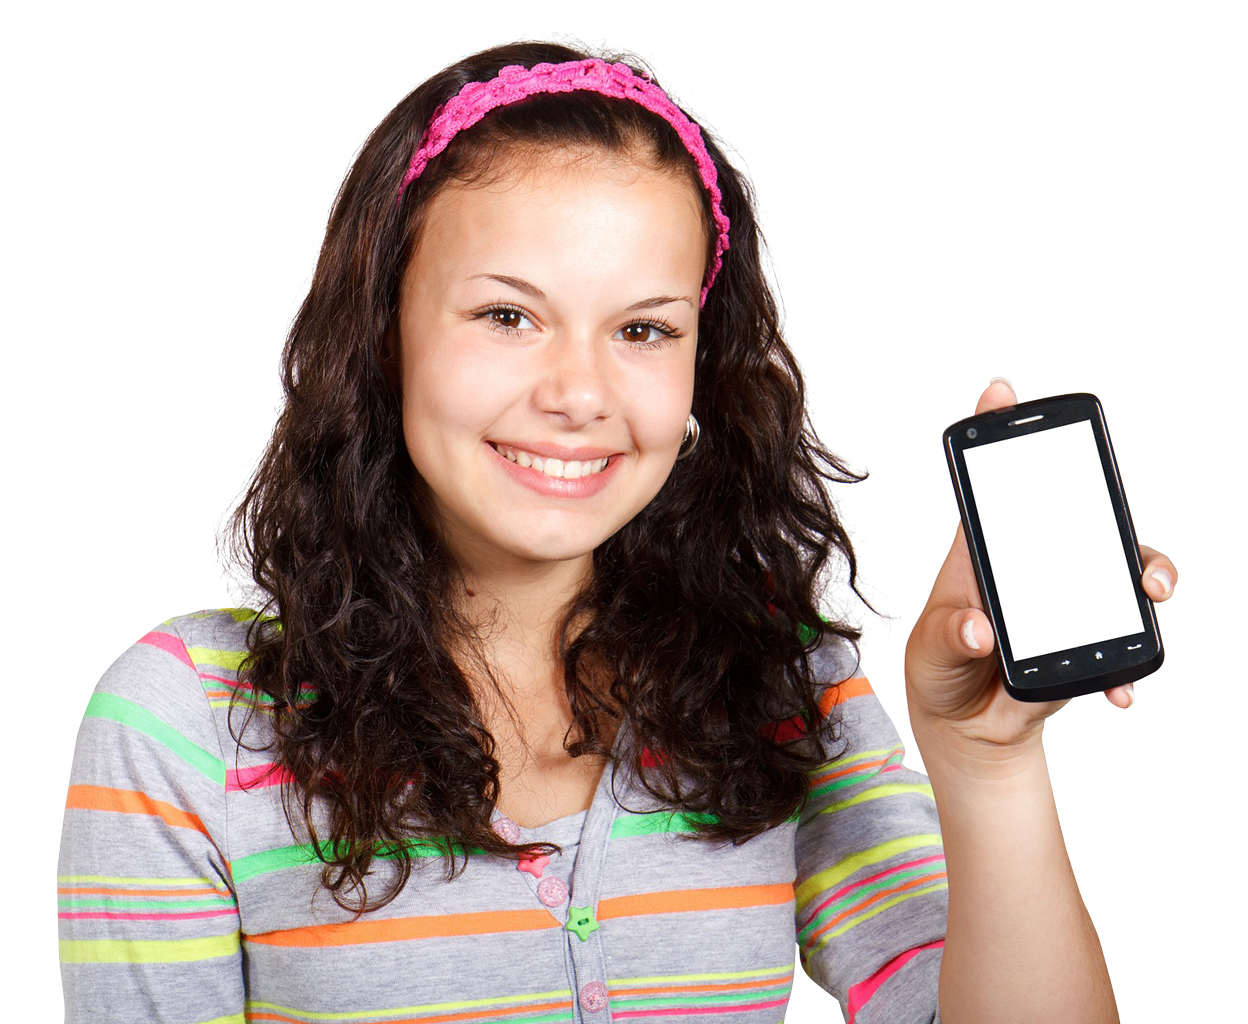 Girl With Mobile Phone PNG Image 1